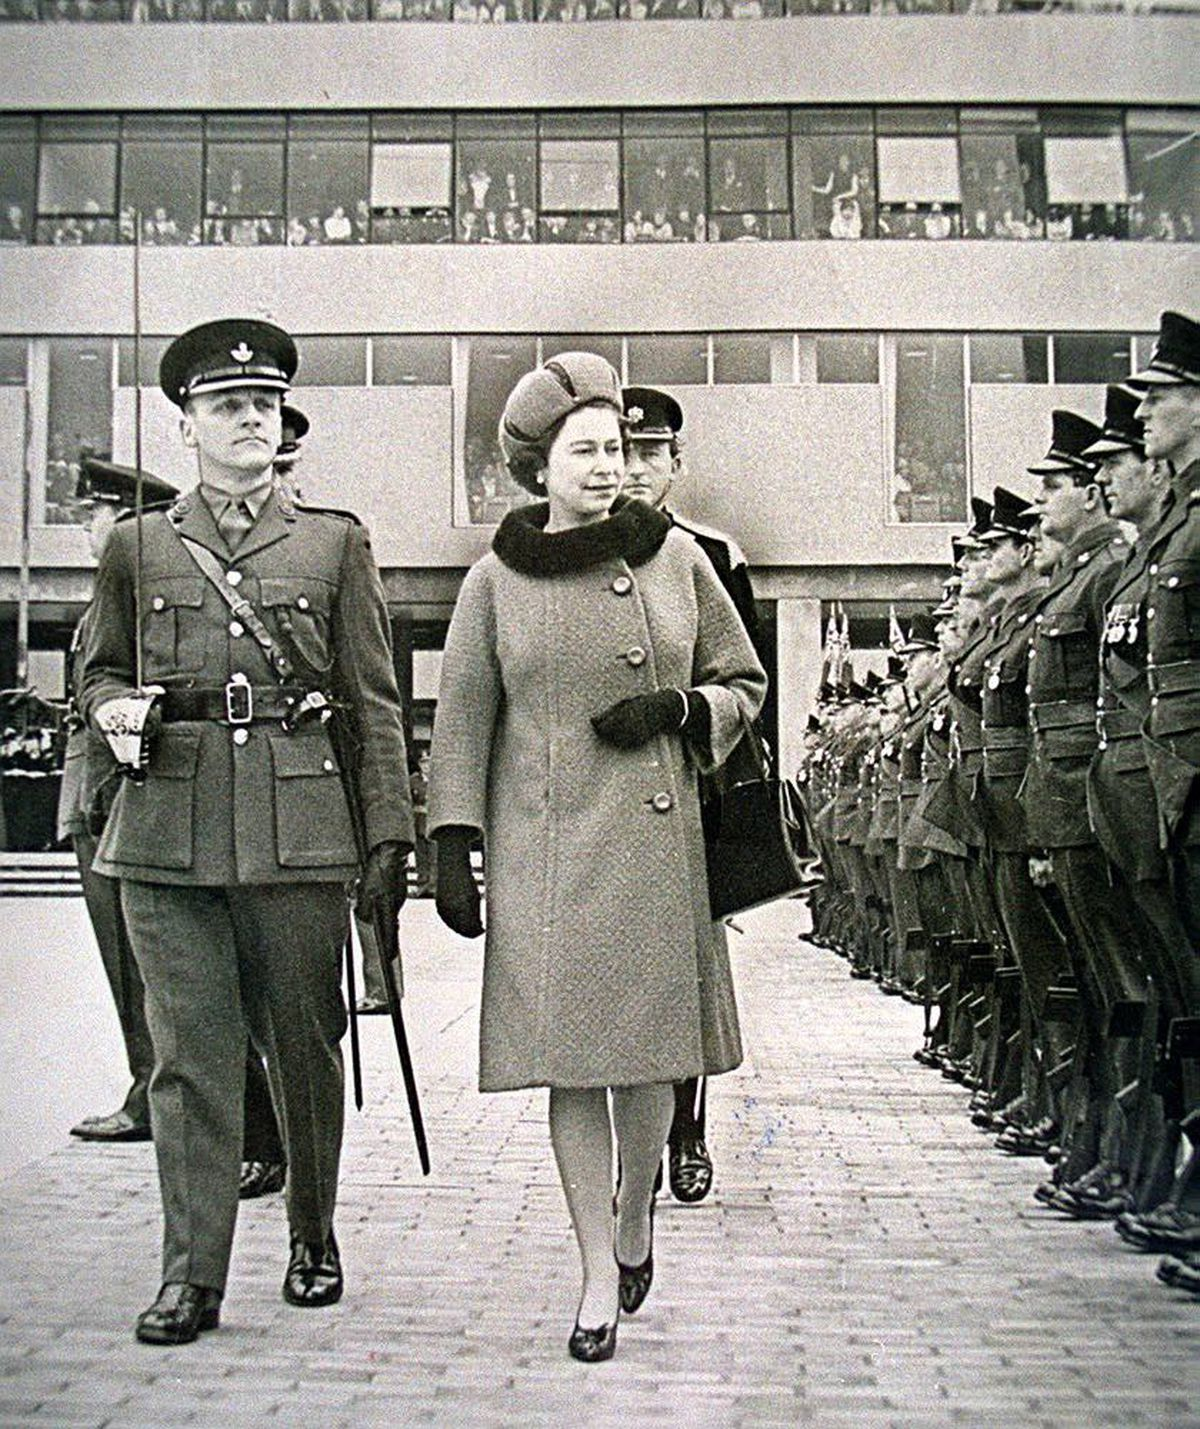 The Queen inspects a guard of honour commanded by Major S E Wardle (left) during the official opening of the new Shirehall, Shrewsbury, on March 17, 1967. This was the last occasion the 4th Battalion of the King's Shropshire Light Infantry paraded – it was disbanded on April 1, 1967.